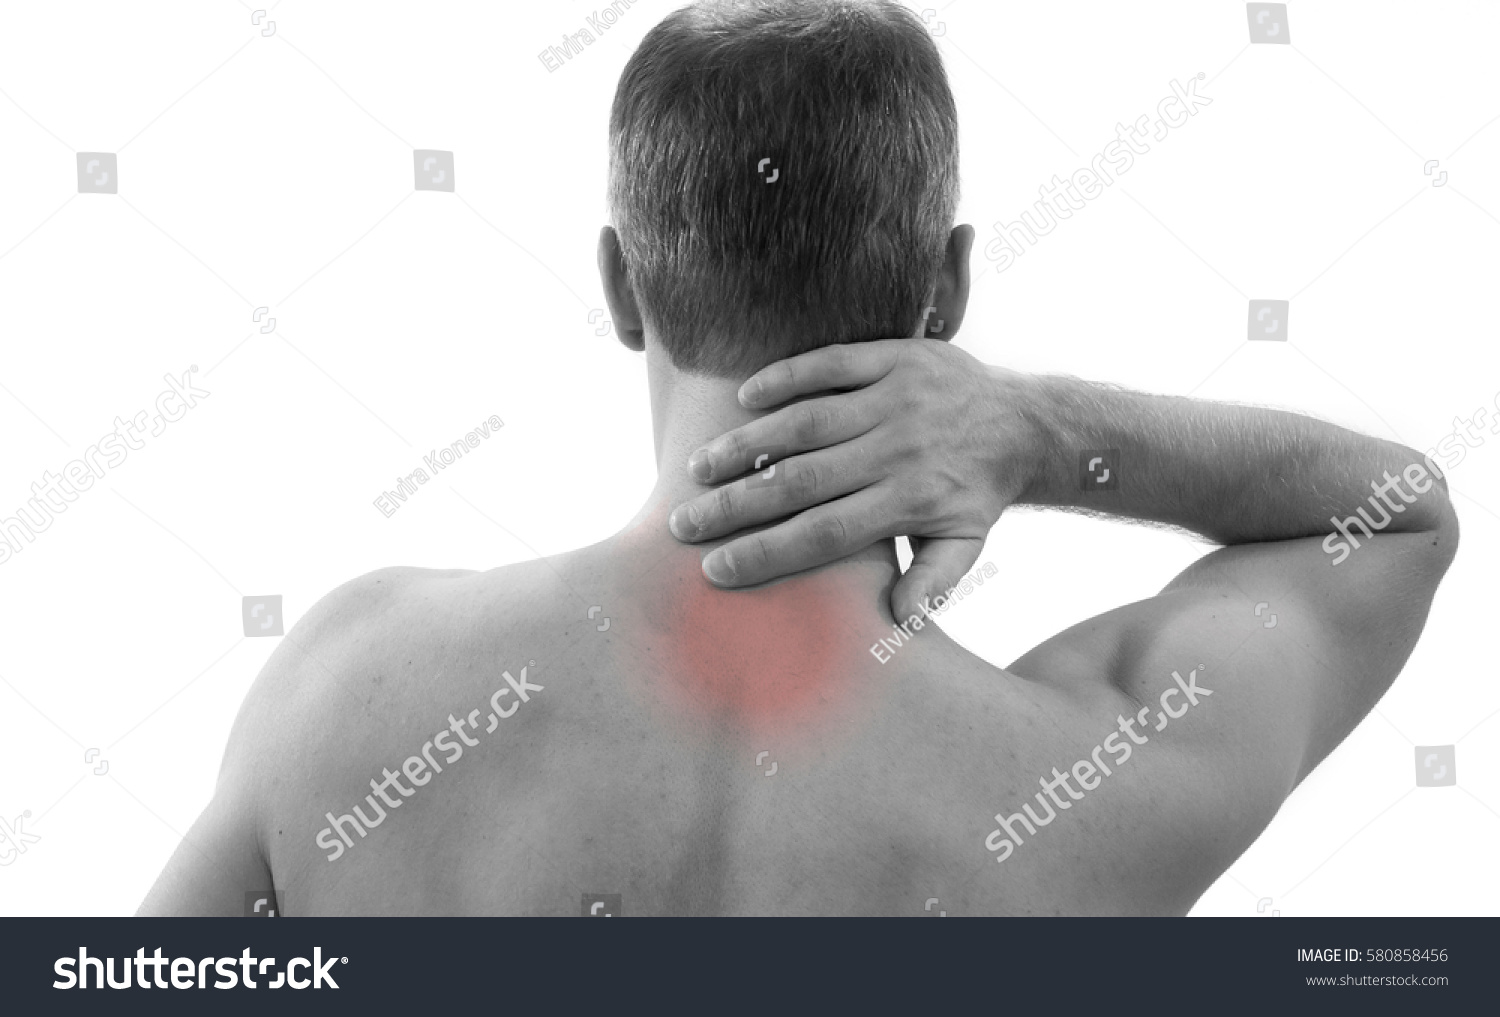 manual therapy of neck stiffness